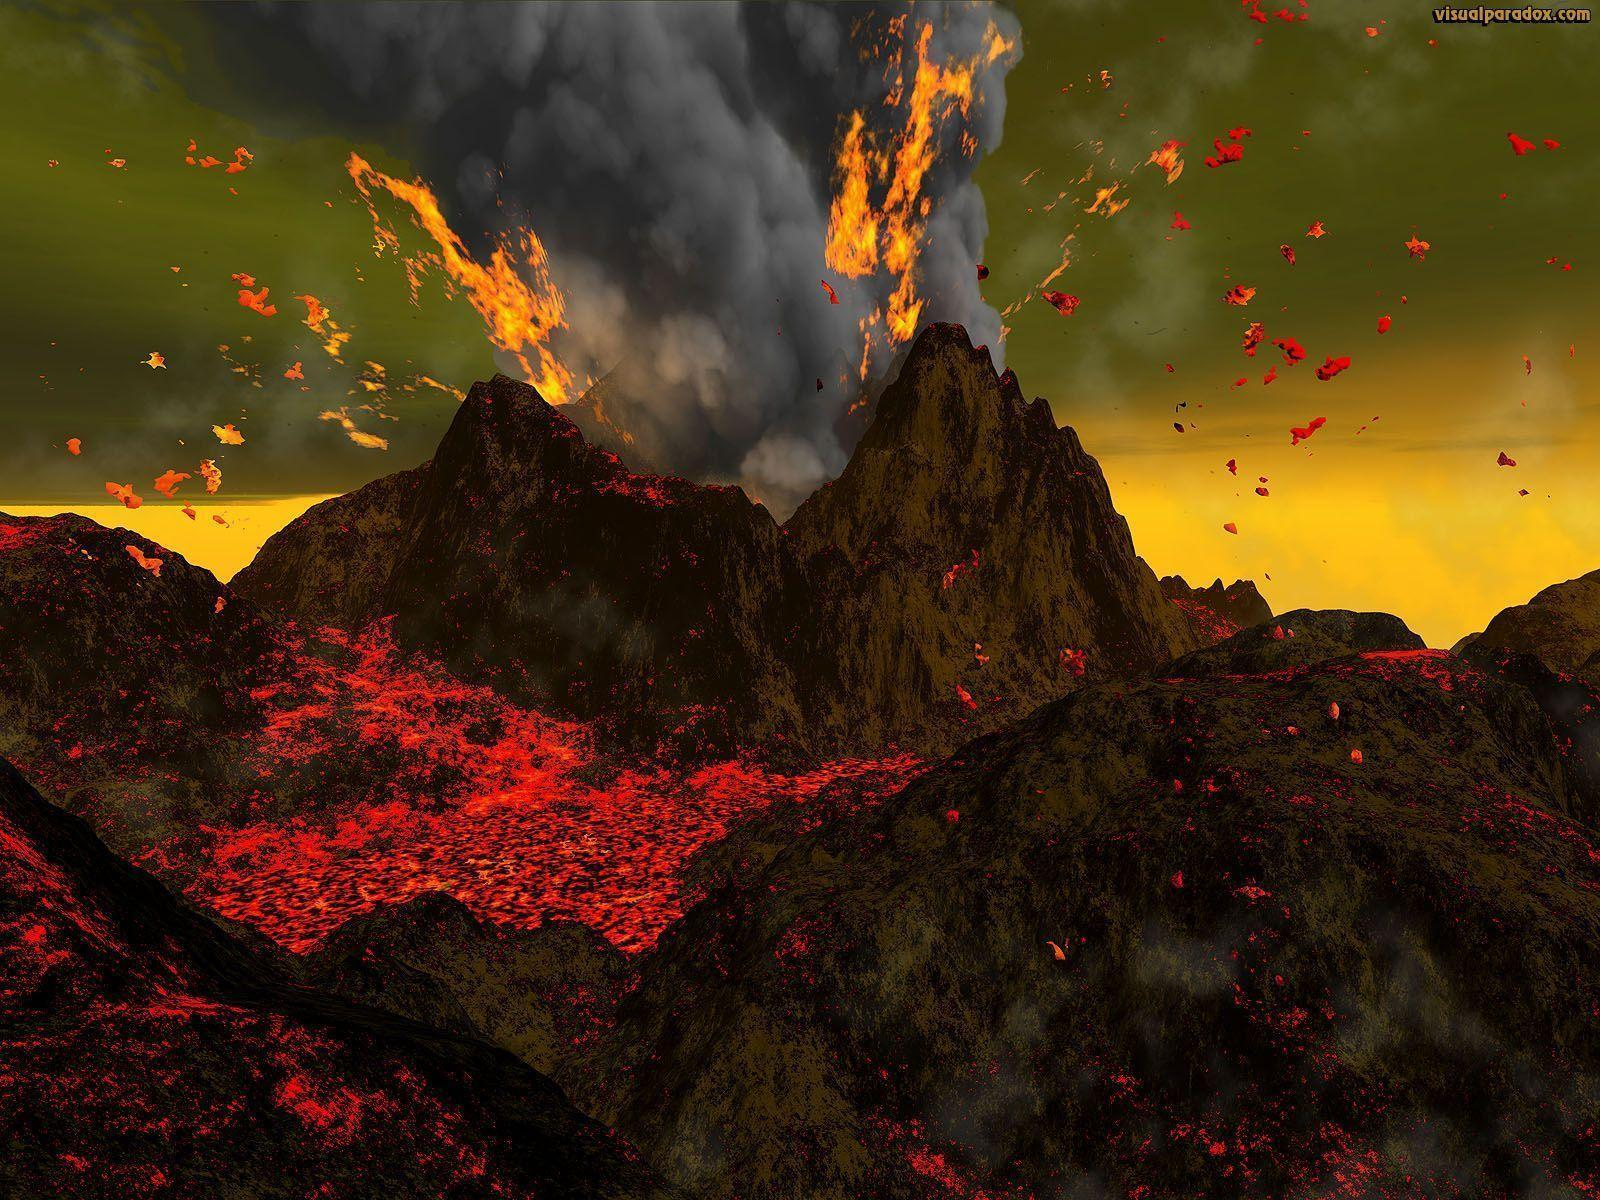 volcano eruption wallpaper hd - photo #27